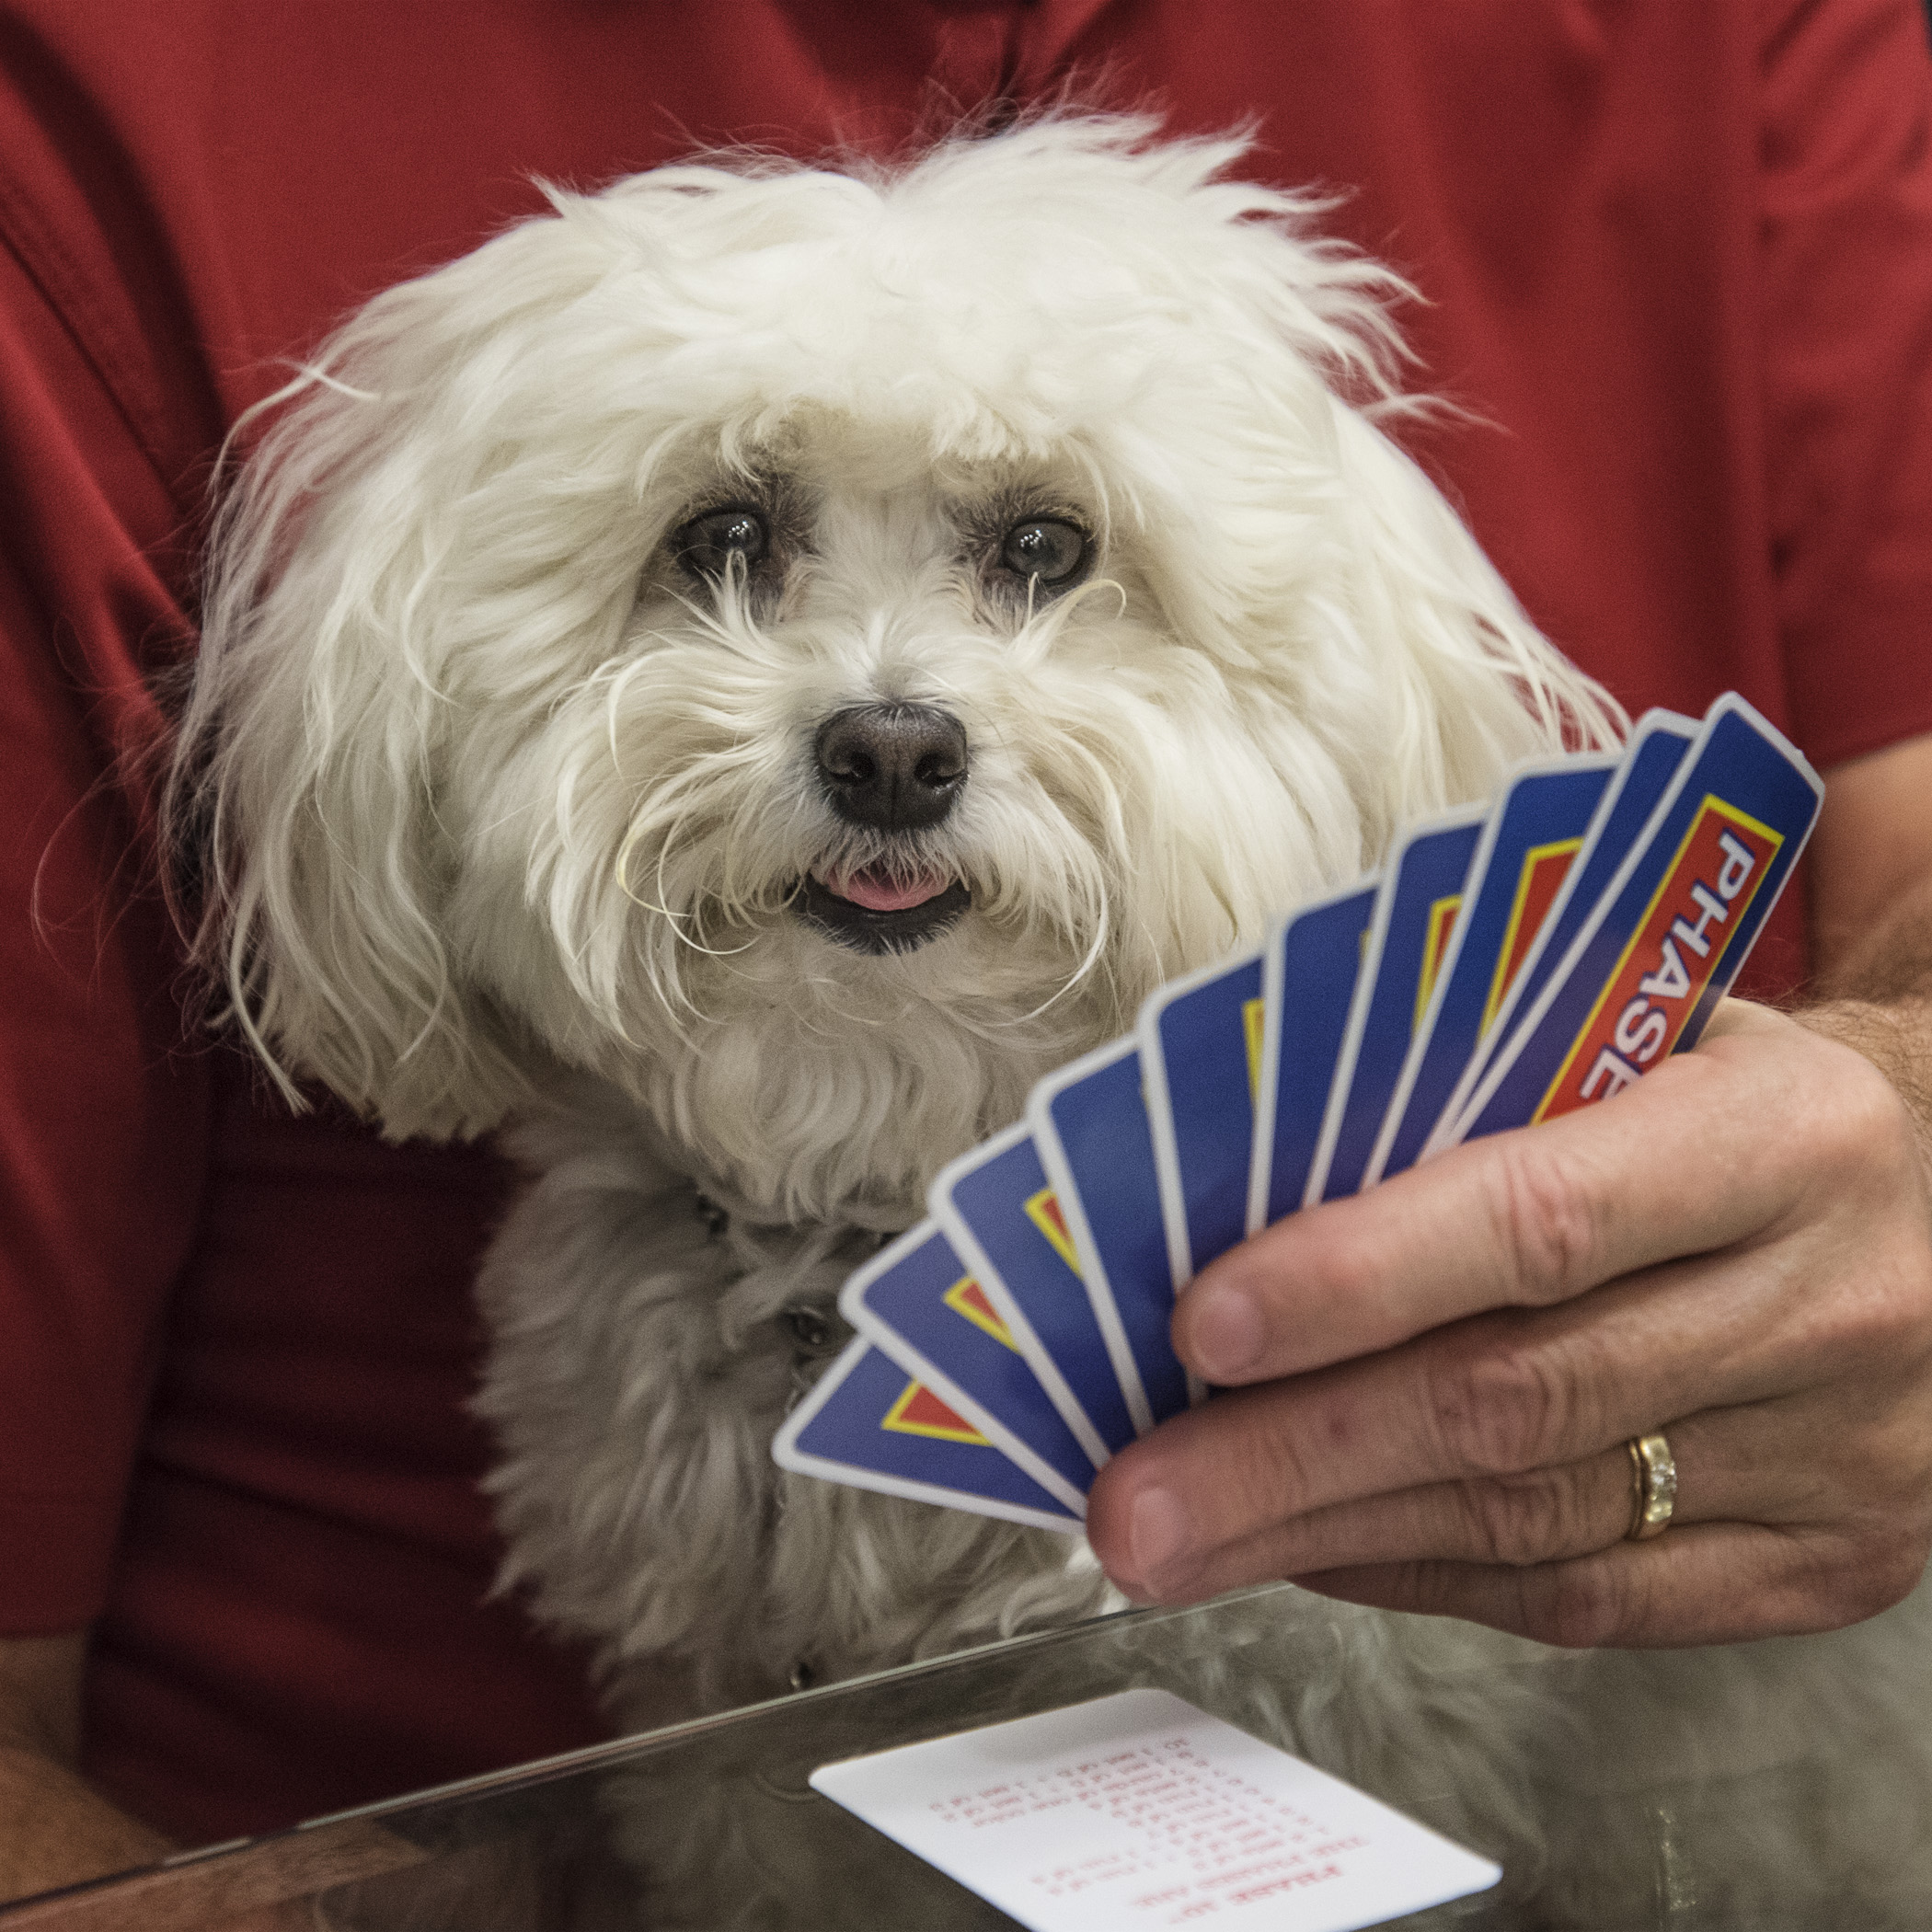 Okay, Grandpa, I'm really good at cards. Follow my lead and there's no way you can lose.